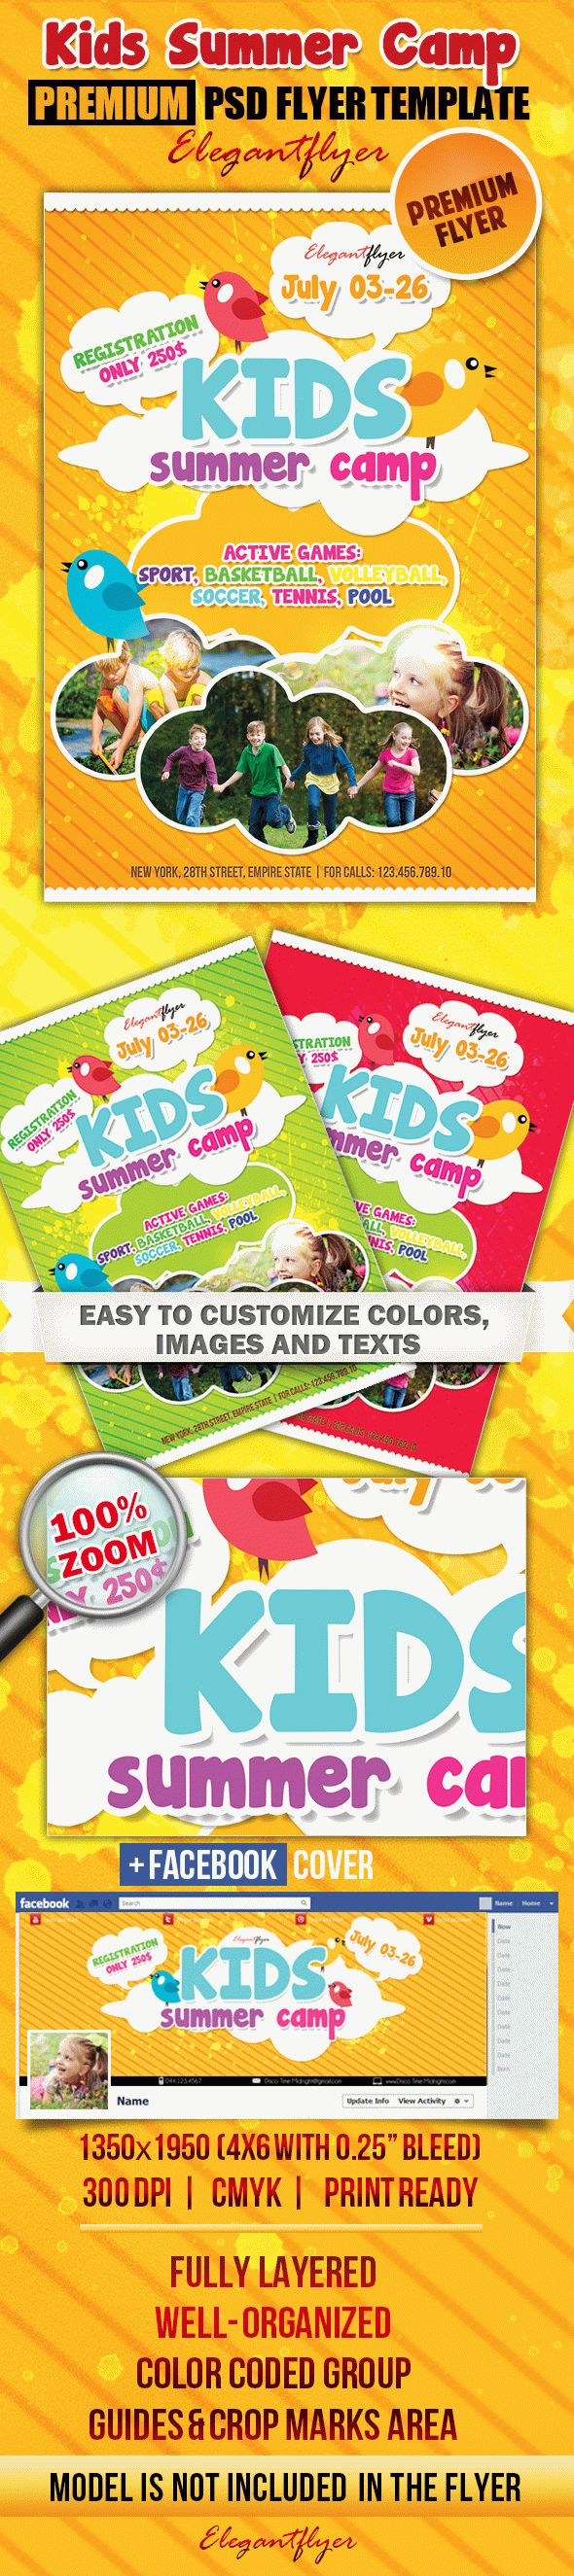 kids summer camp psd flyer templates by elegantflyer. Black Bedroom Furniture Sets. Home Design Ideas